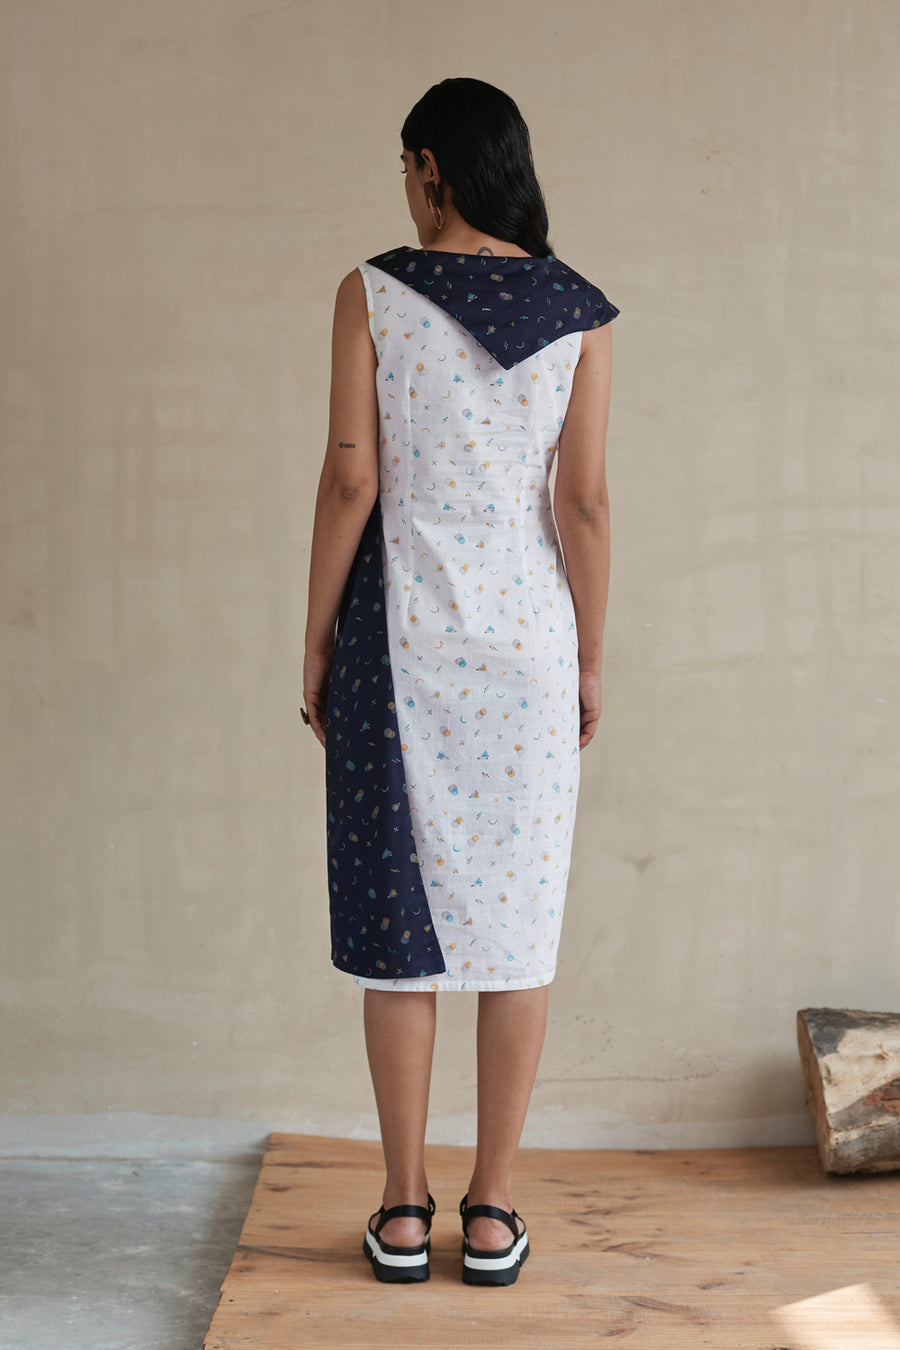 Shifted Shapes Flap Dress - Ethical made fashion - onlyethikal